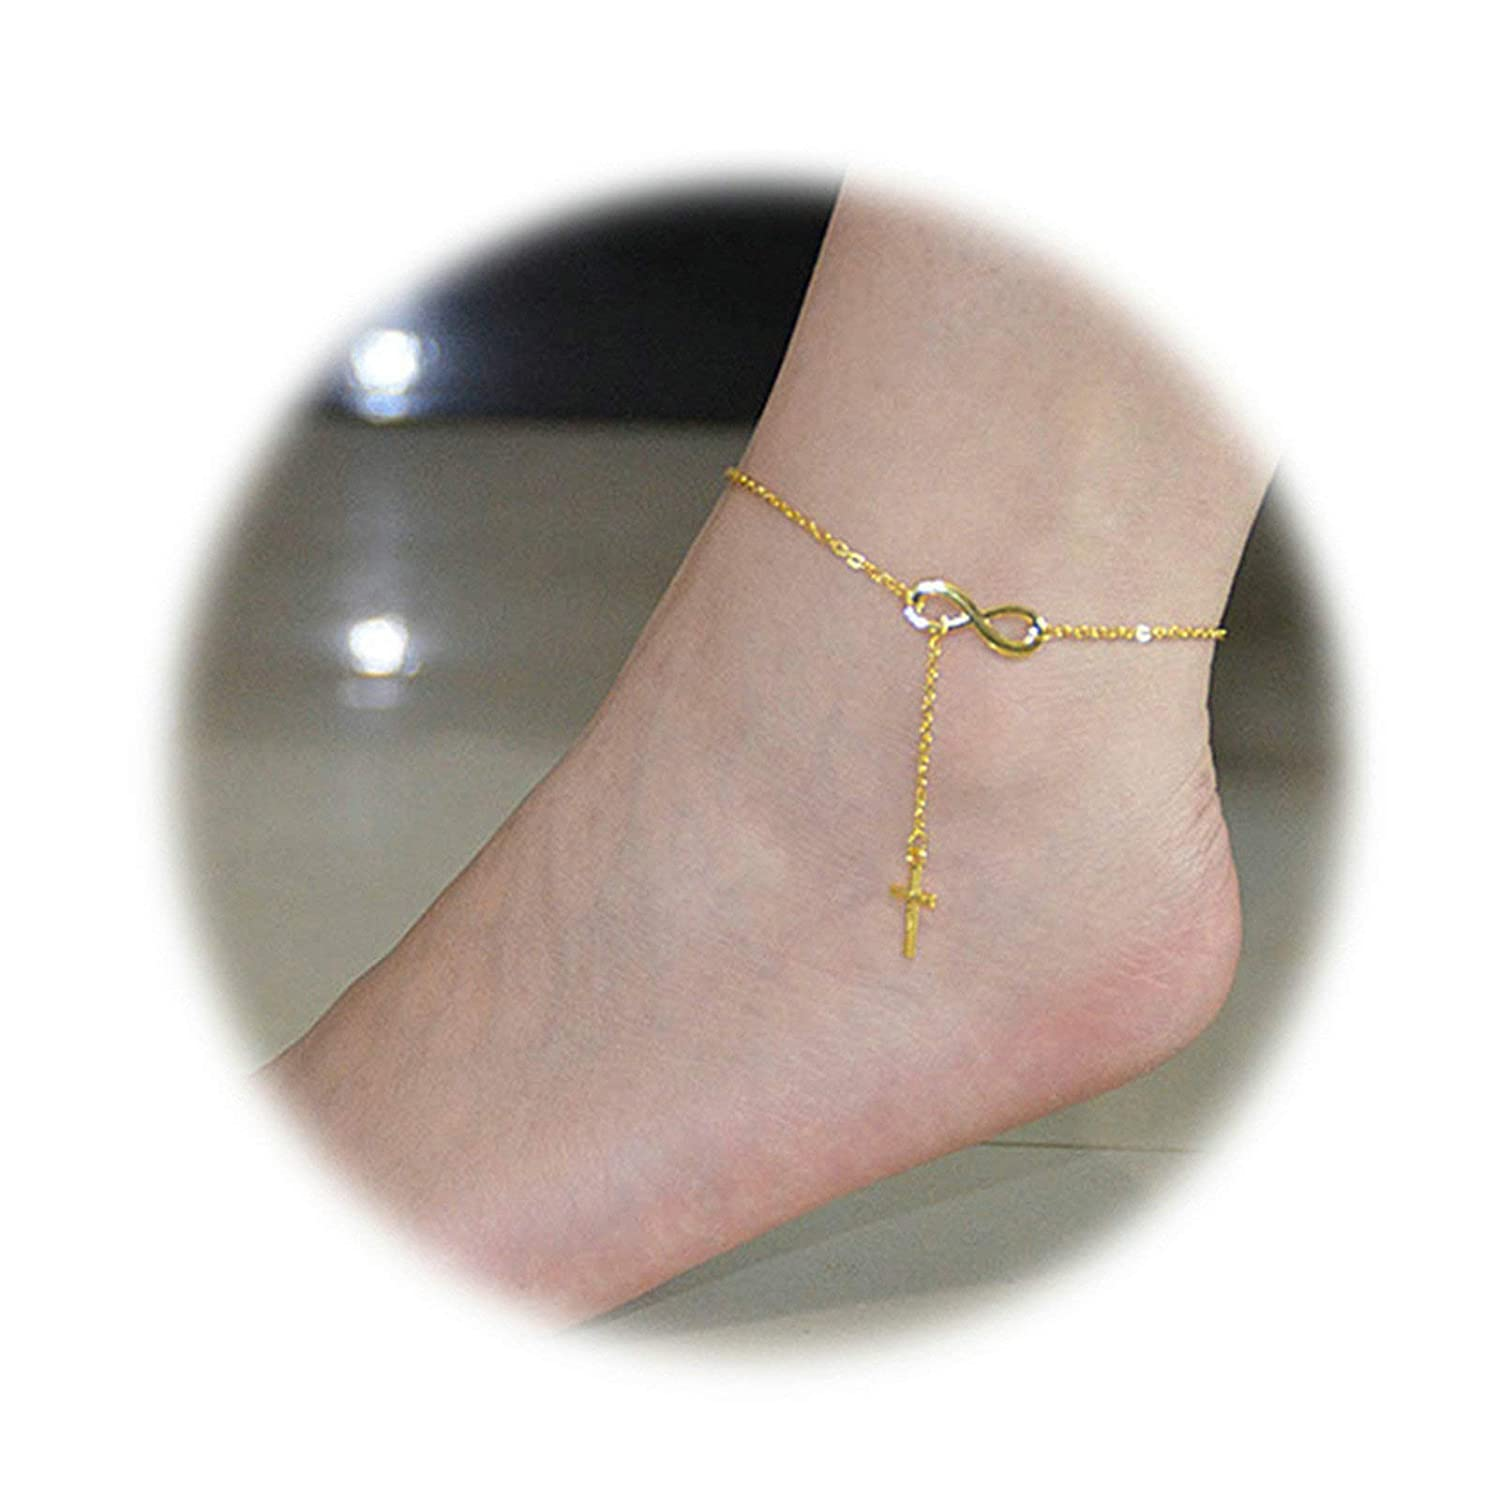 """New Lucite Chain Anklet Fits 9-10/"""" Women Oversized Ankle Bracelet 3 Colors"""